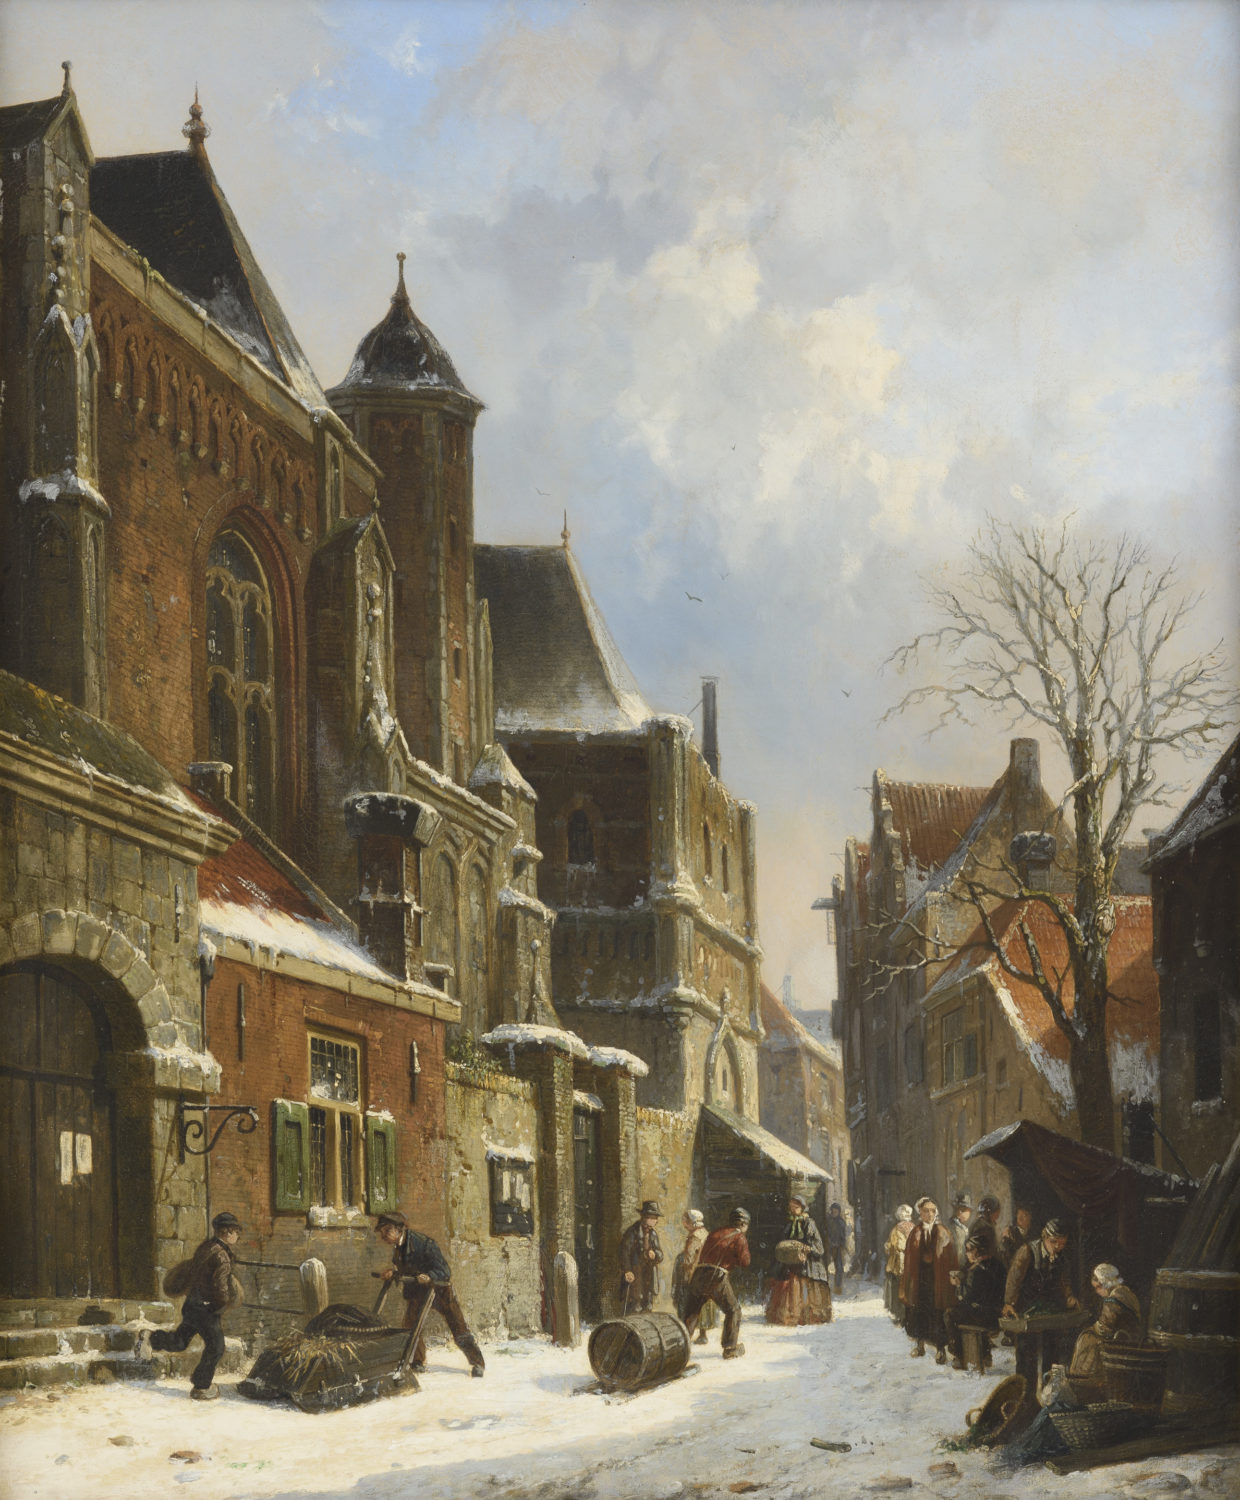 Adrianus Eversen | A Dutch town in winter | Kunsthandel Bies | Bies Gallery